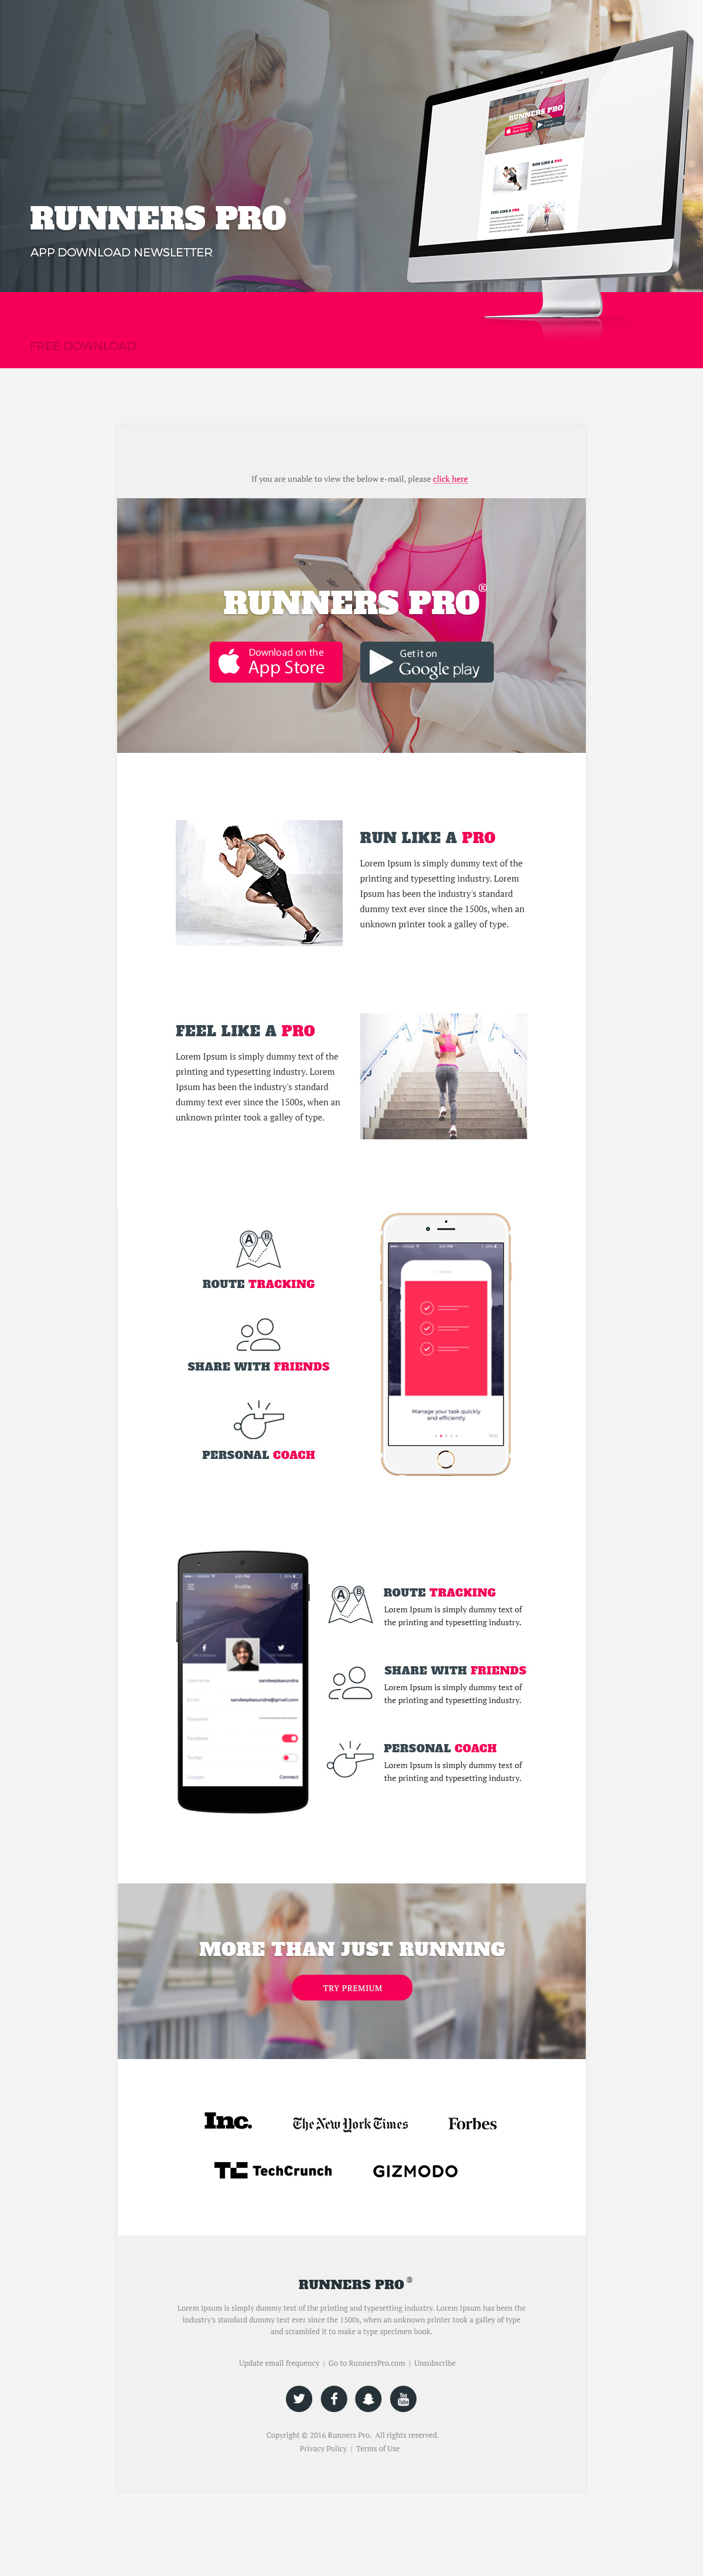 Application Download Newsletter Psd Free Email Template